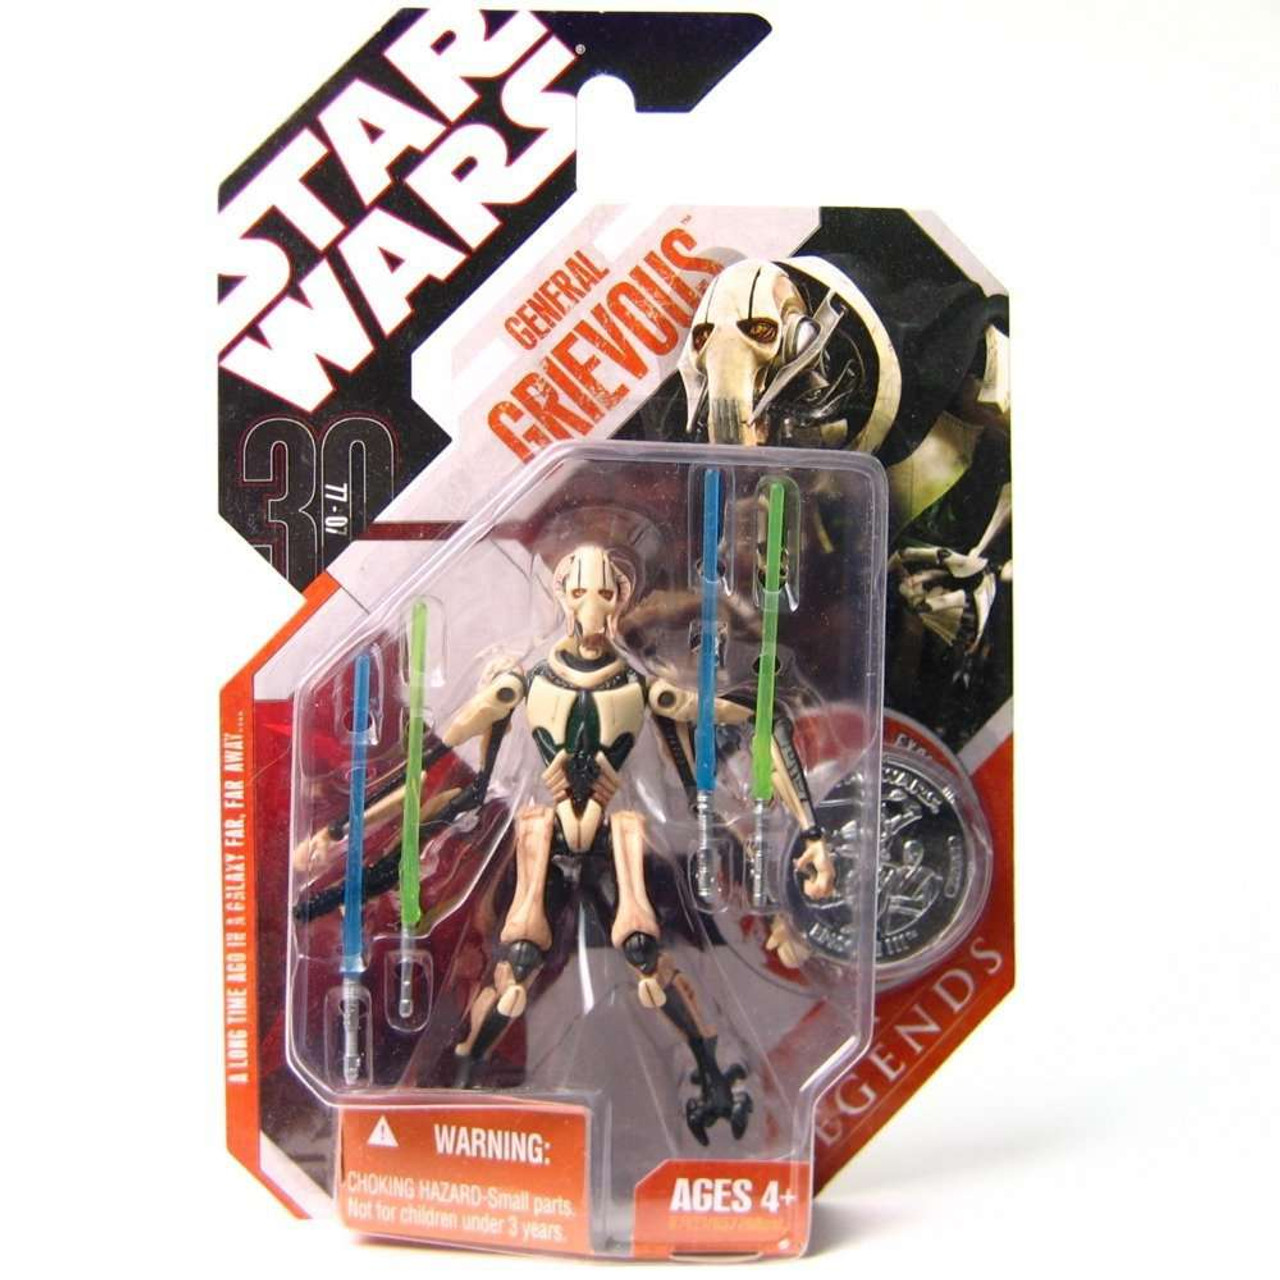 Star Wars General Grievous Toys : Star wars revenge of the sith saga legends th